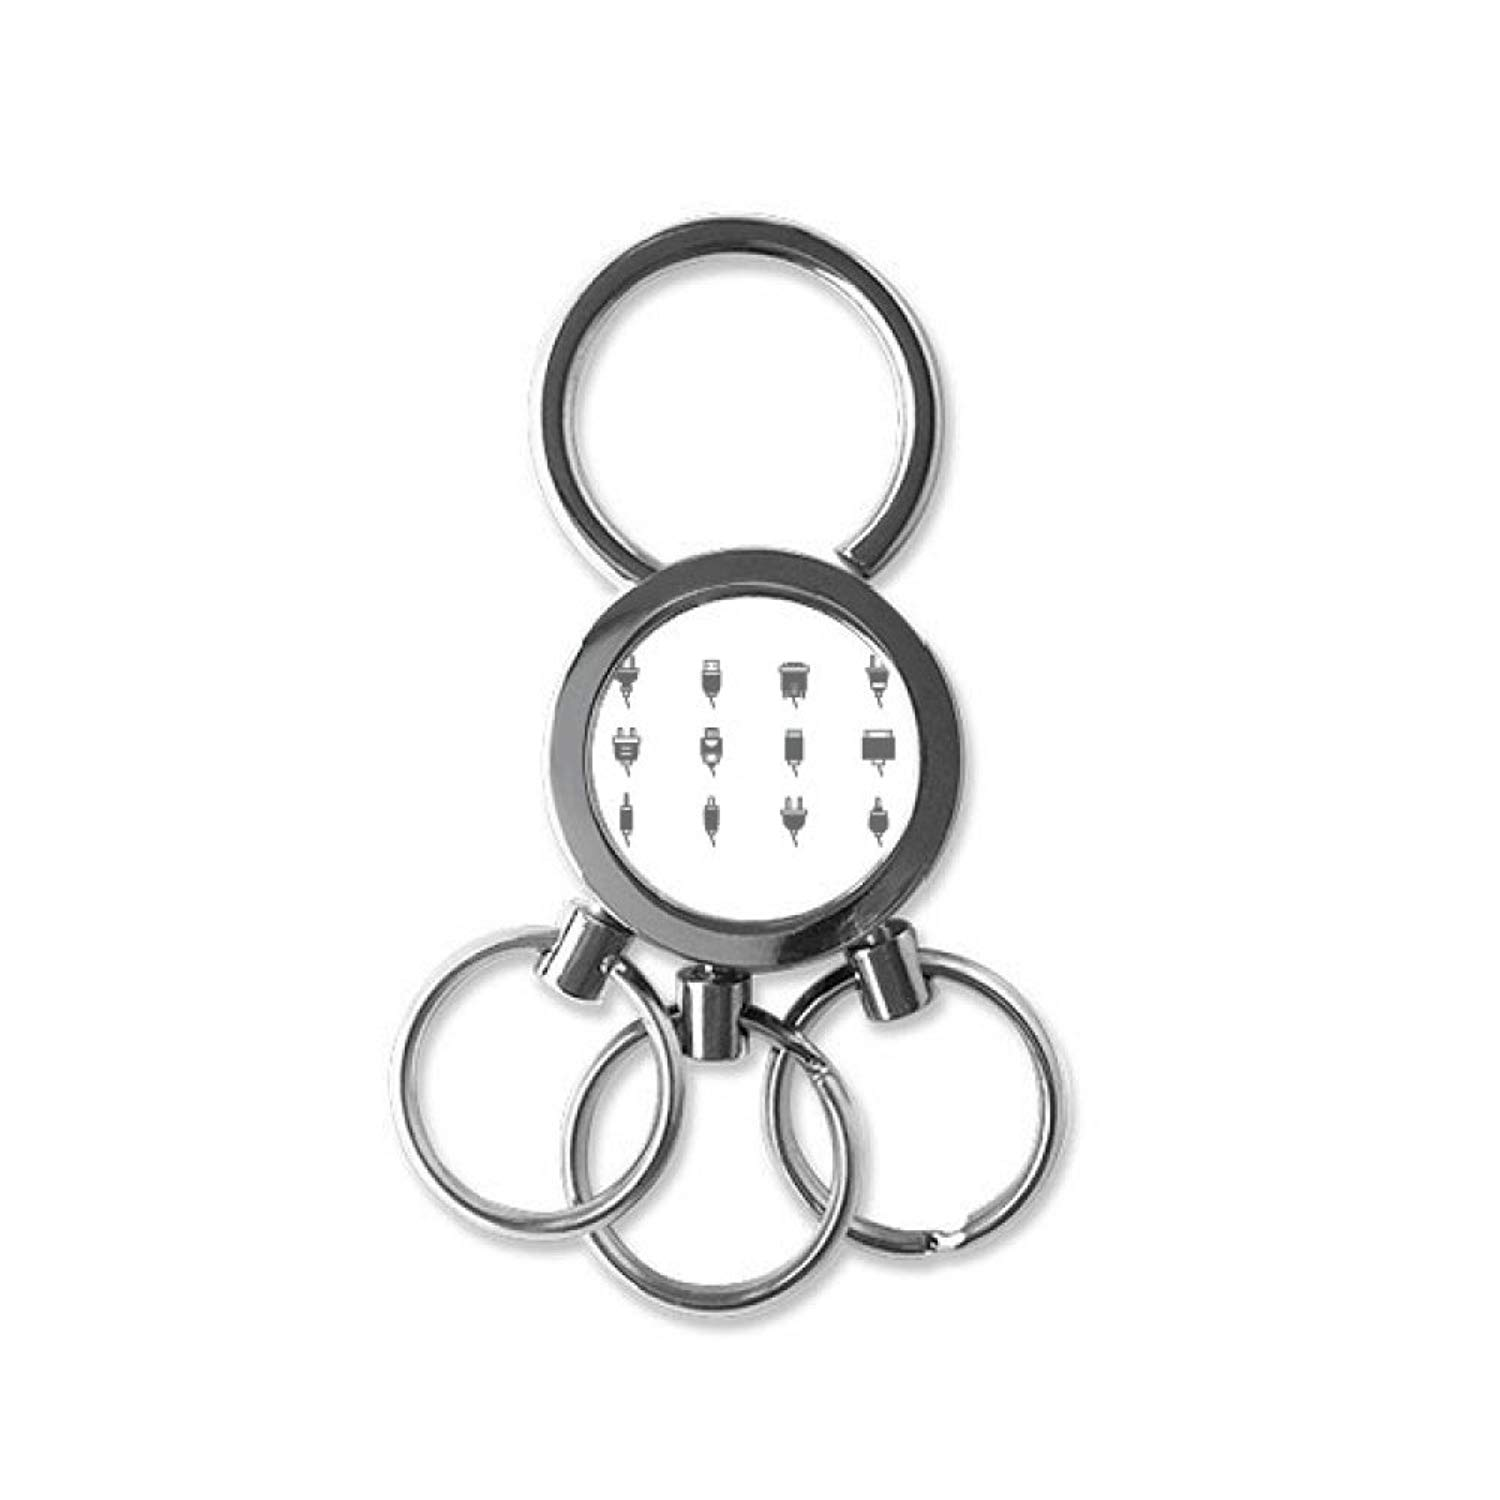 Cheap Circuit Connection Diagram Find Hearing Aids Wiring Get Quotations Plug Socket Pattern Stainless Steel Metal Key Chain Ring Car Keychain Keyring Clip Gift